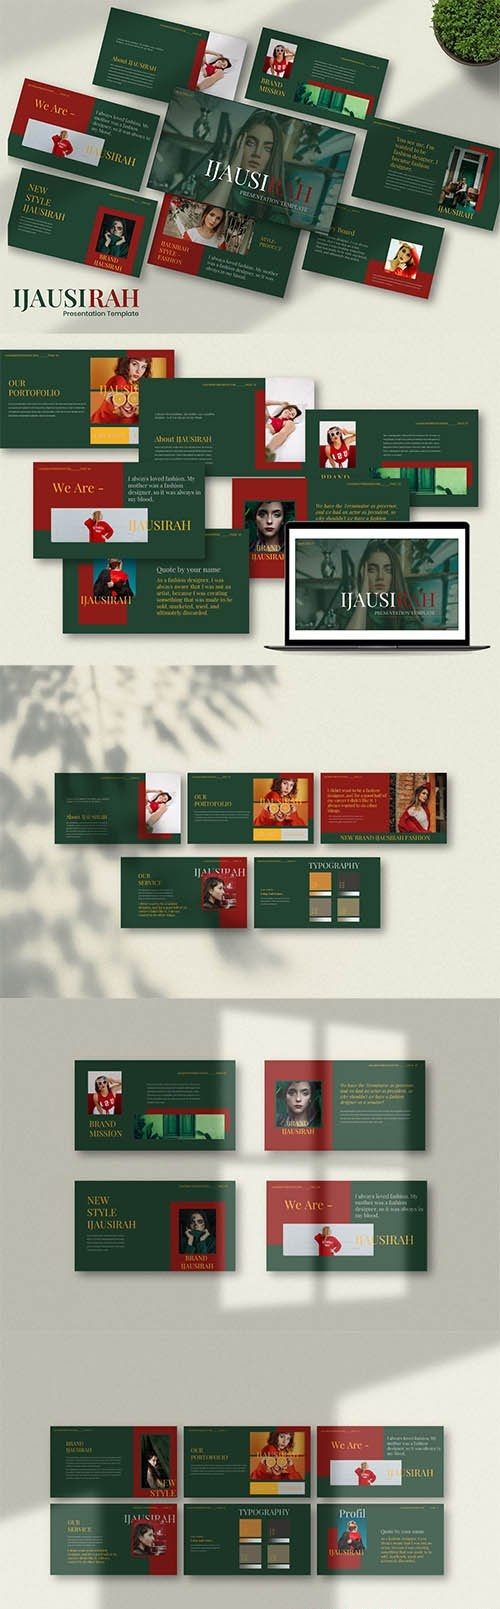 Ijausirah Creative Powerpoint, Keynote and Google Slides Template